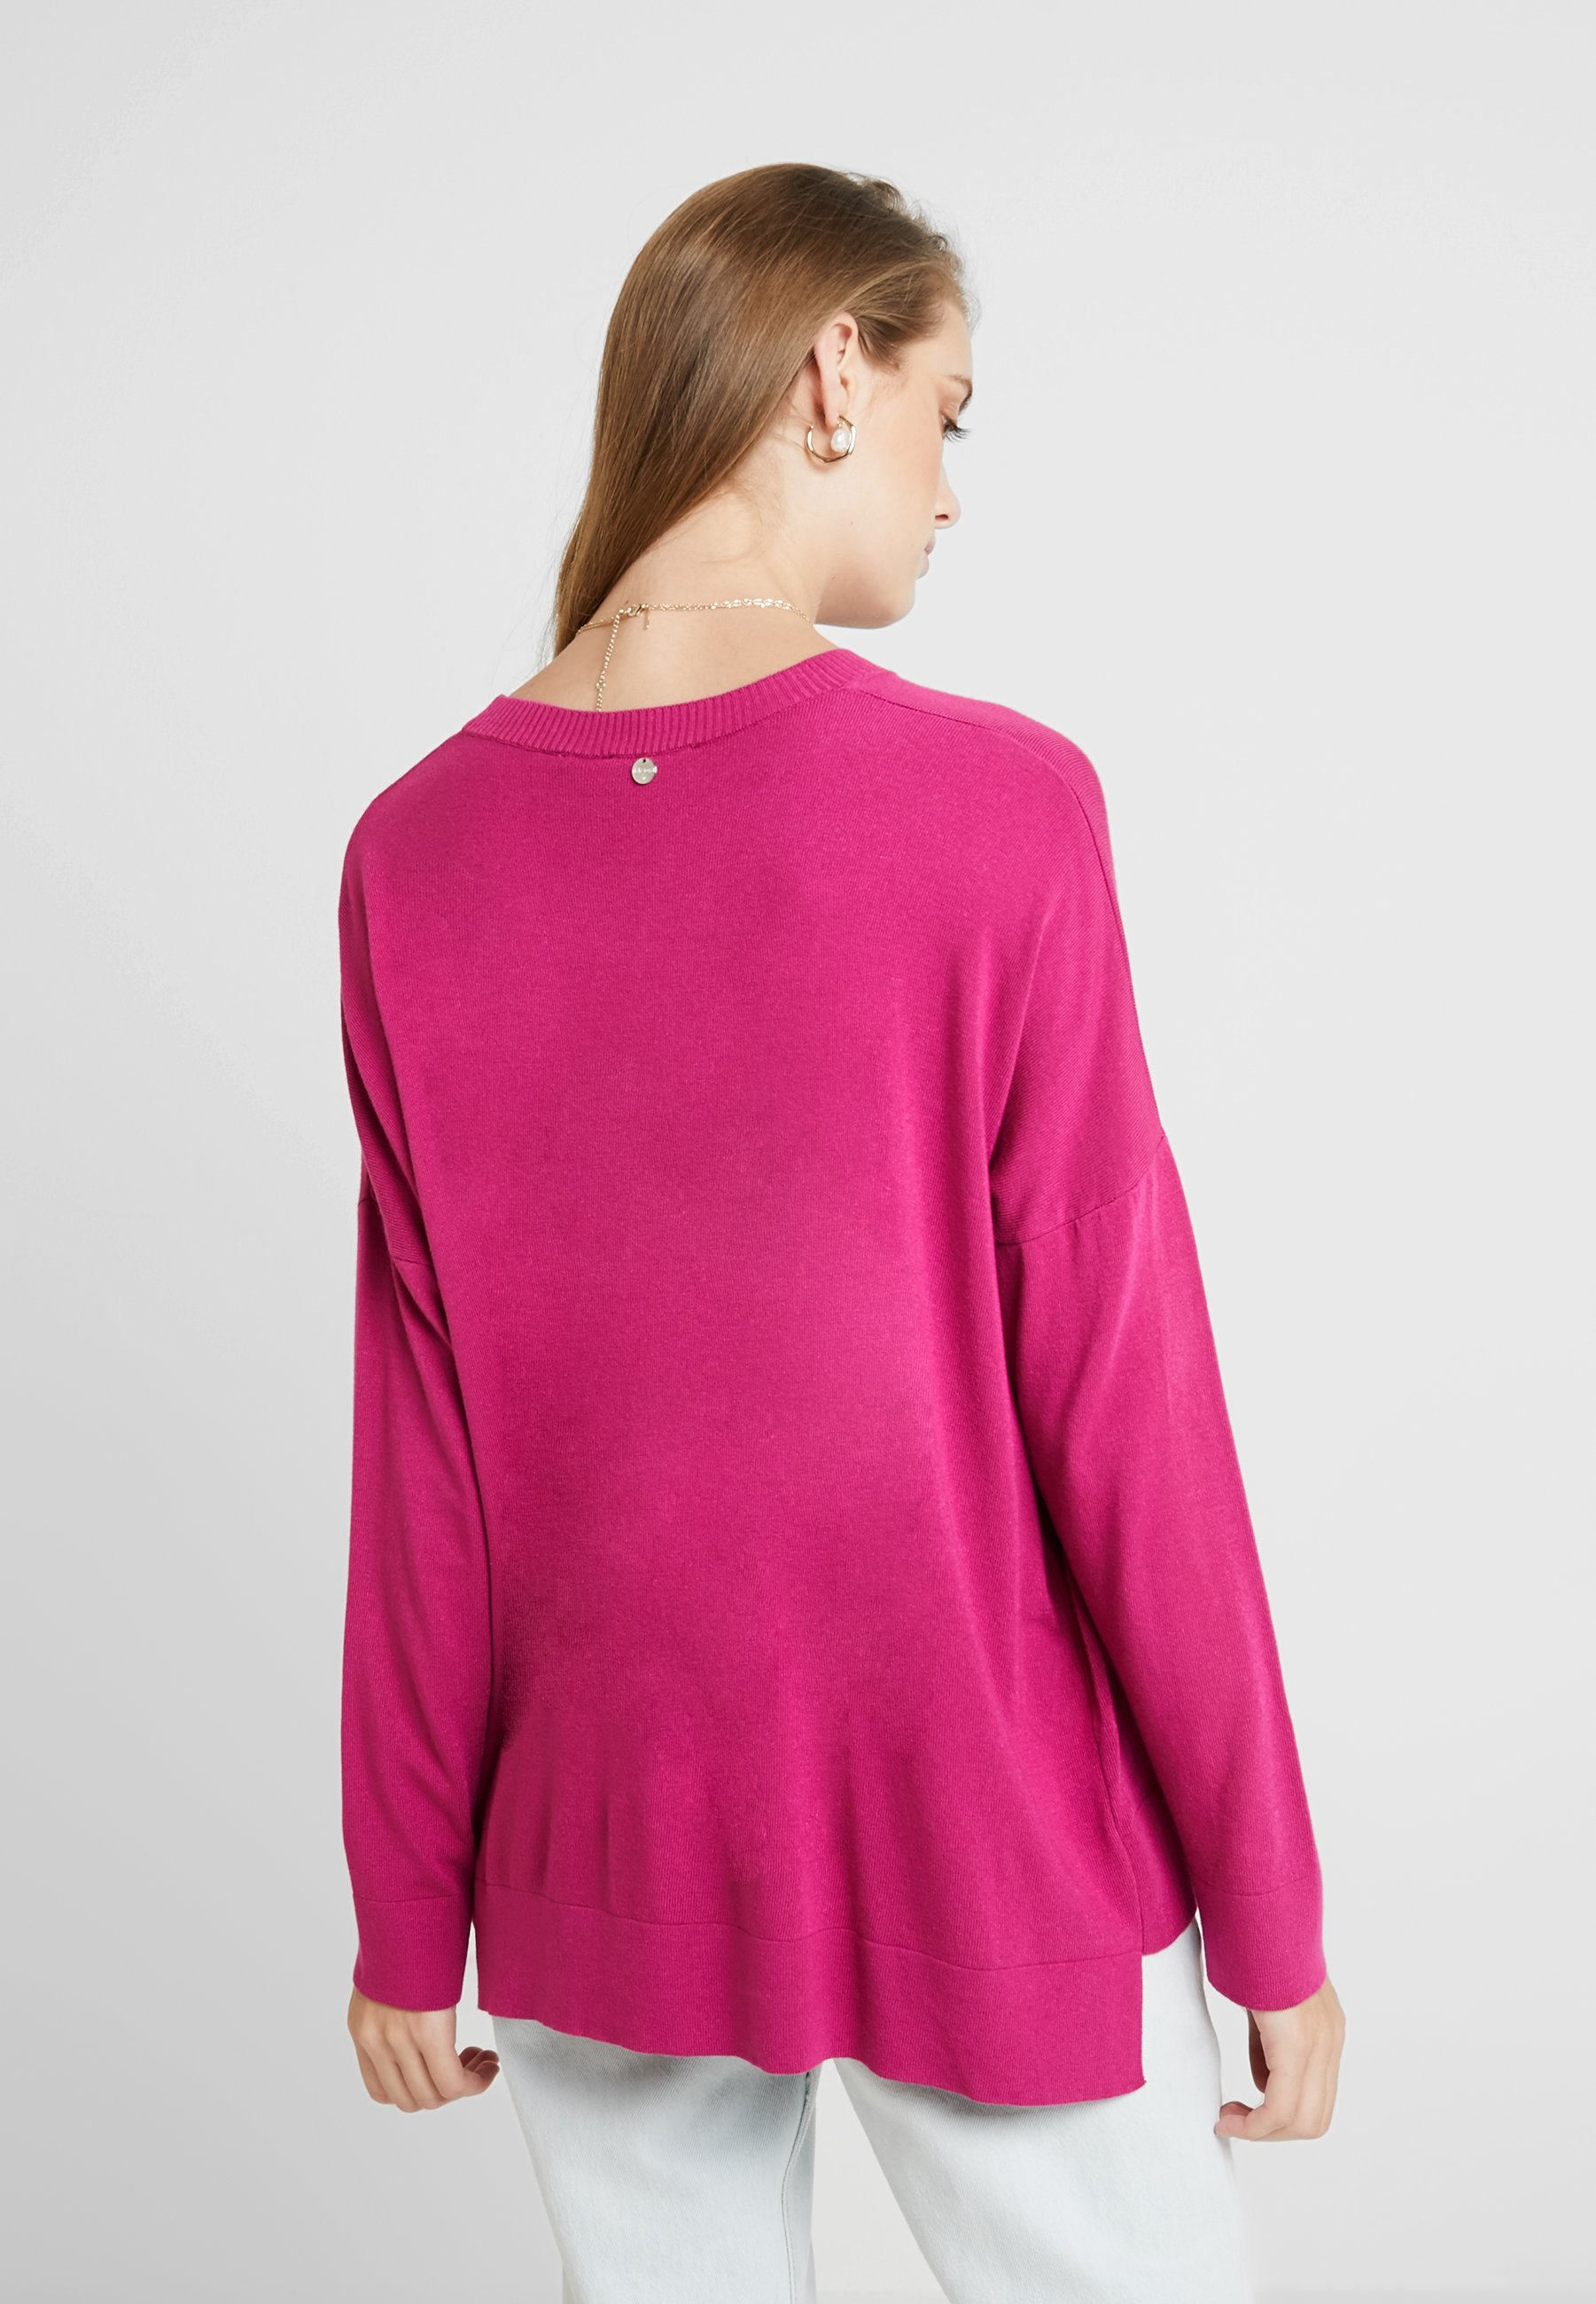 Raspberry Pink Hi Royal lowPullover Crew Neck Richamp; SpqUMVz